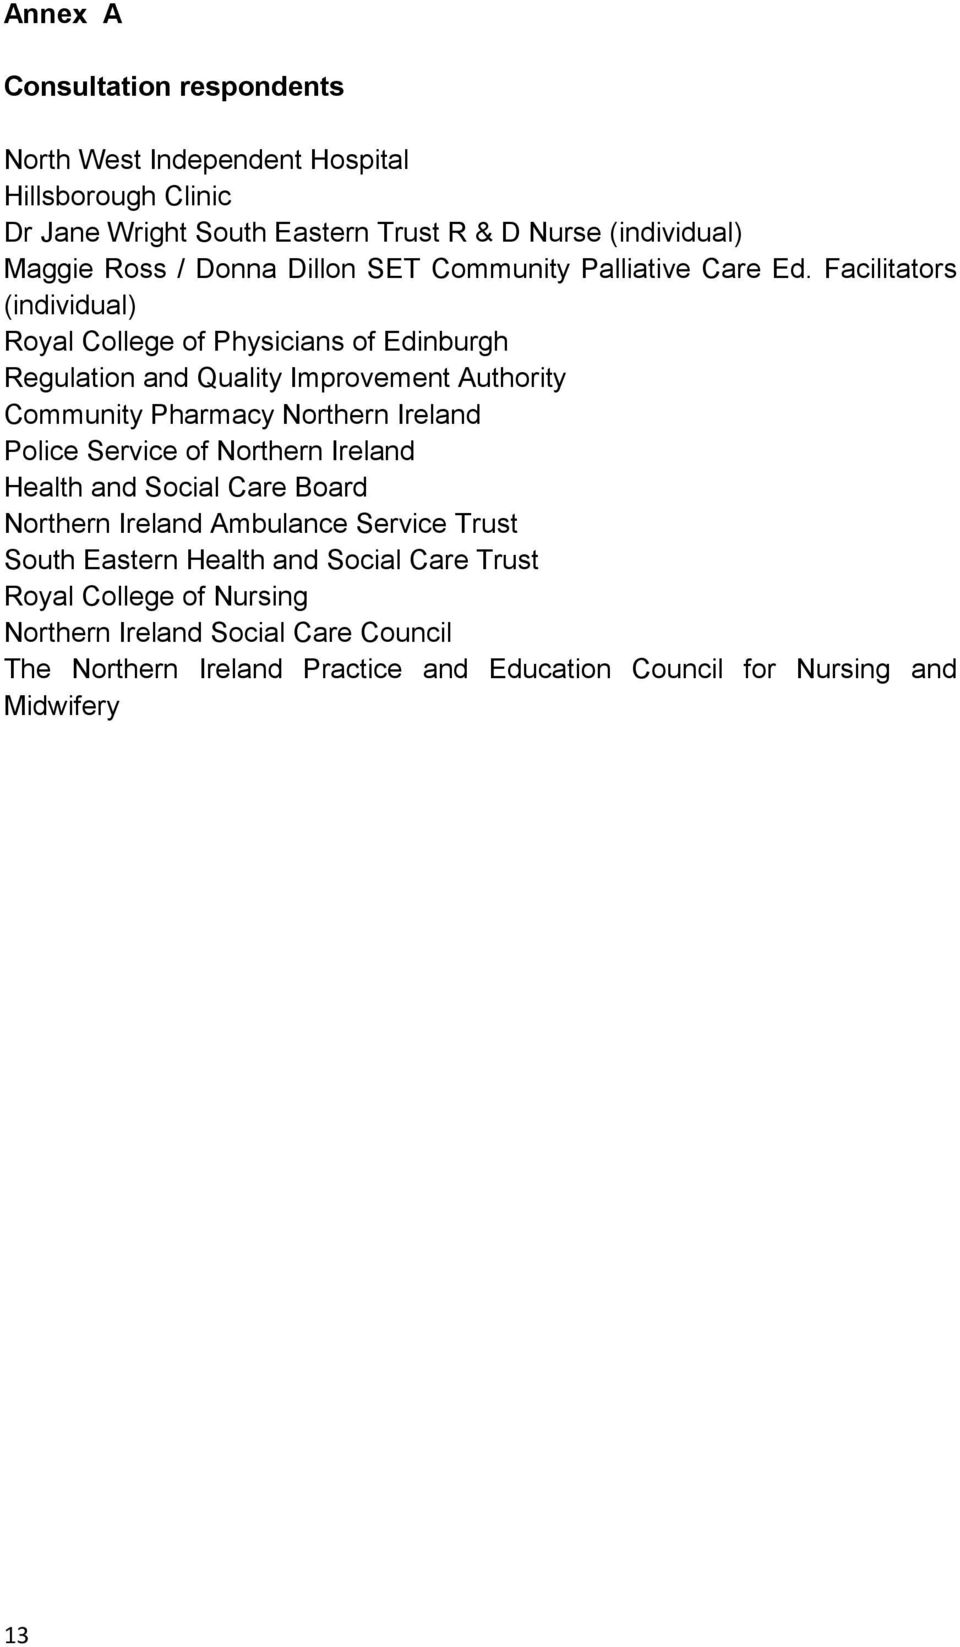 Facilitators (individual) Royal College of Physicians of Edinburgh Regulation and Quality Improvement Authority Community Pharmacy Northern Ireland Police